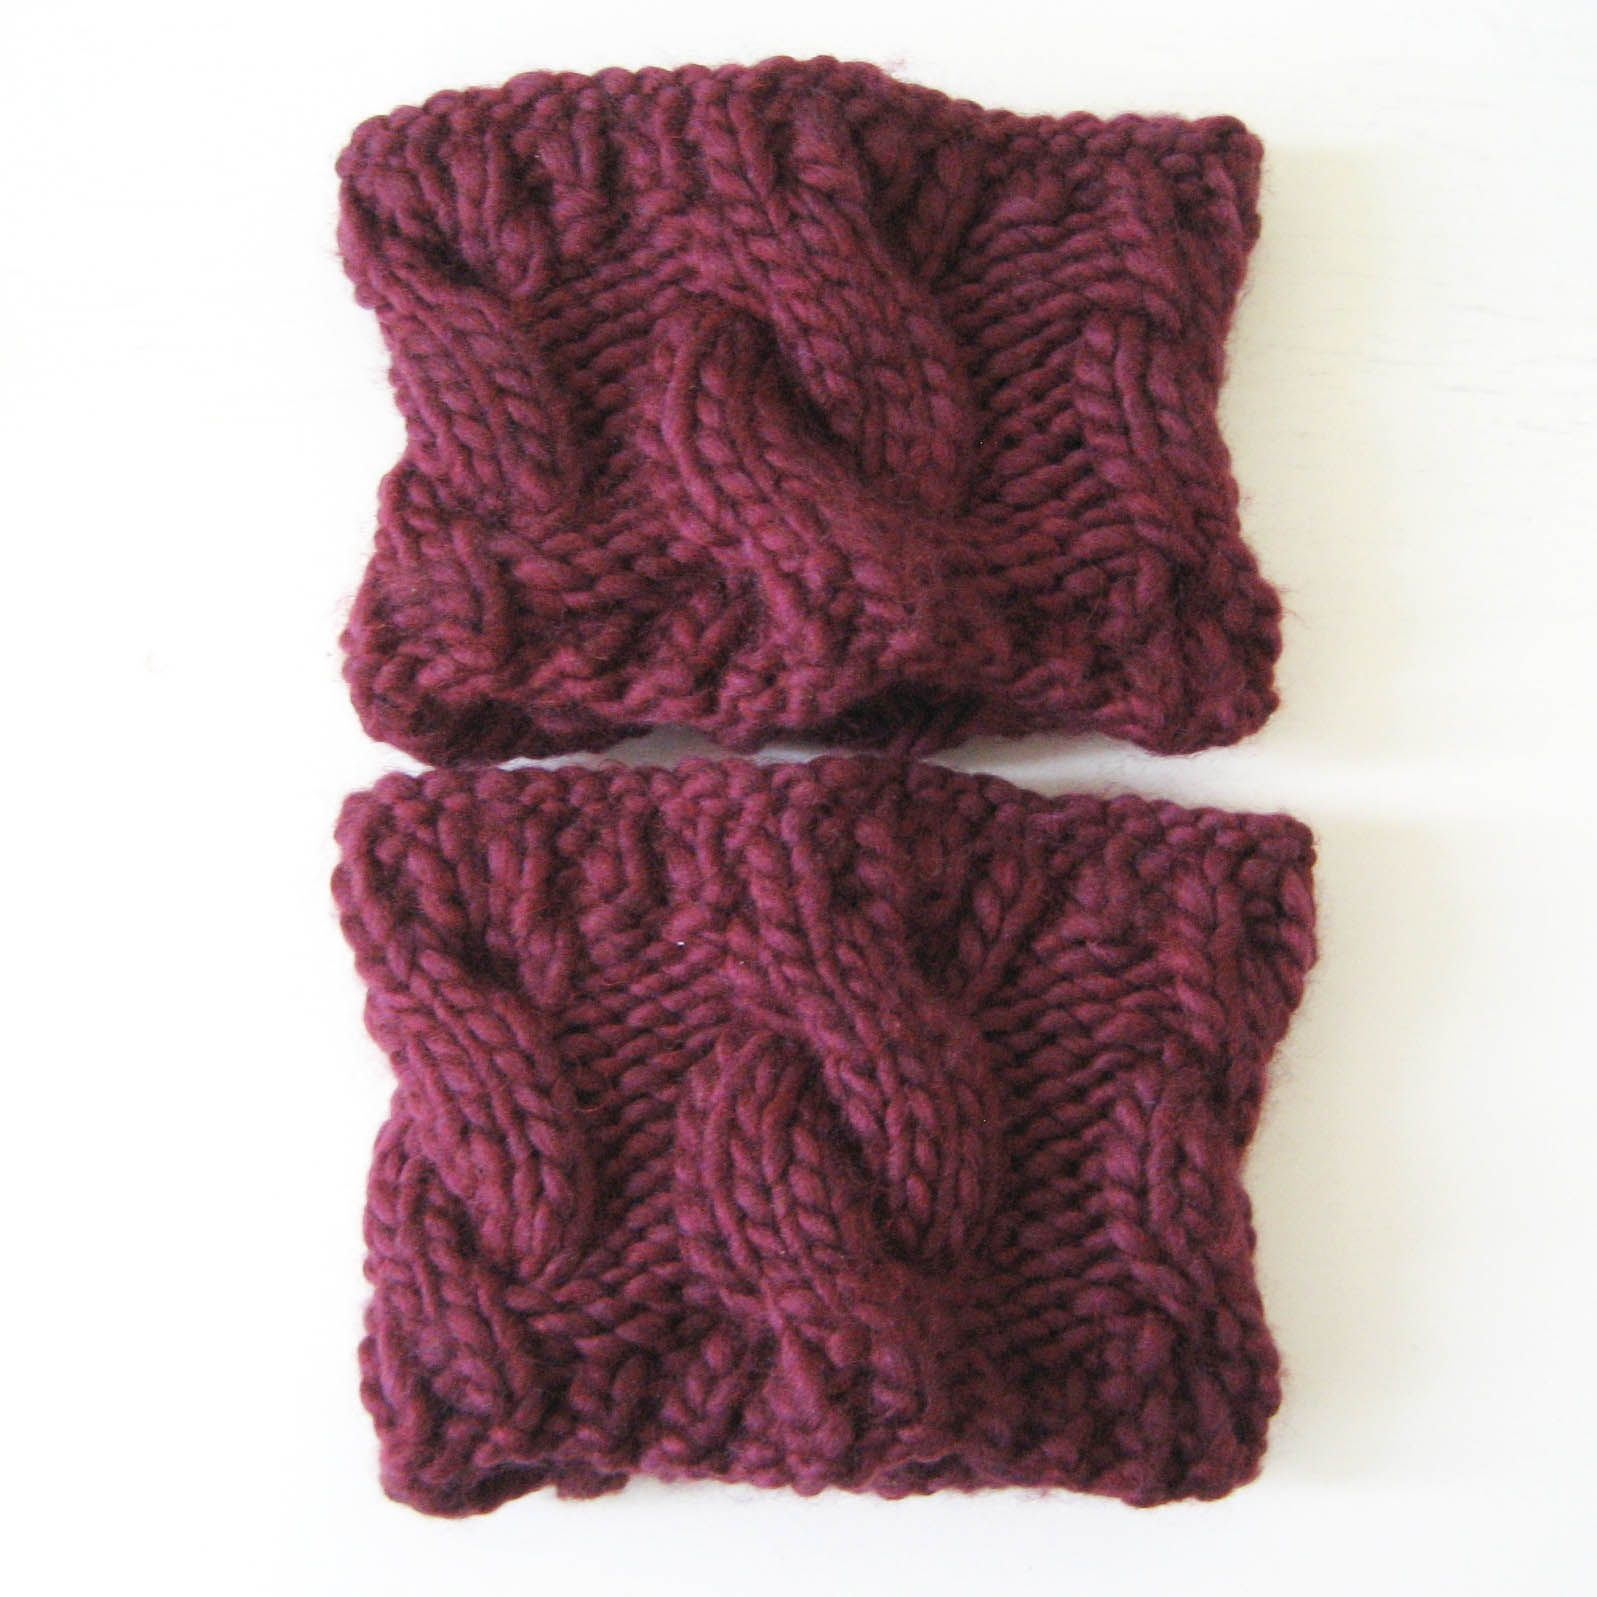 DIY Knitted Boot Cuffs | Bernat Roving (half a ball used for one ...